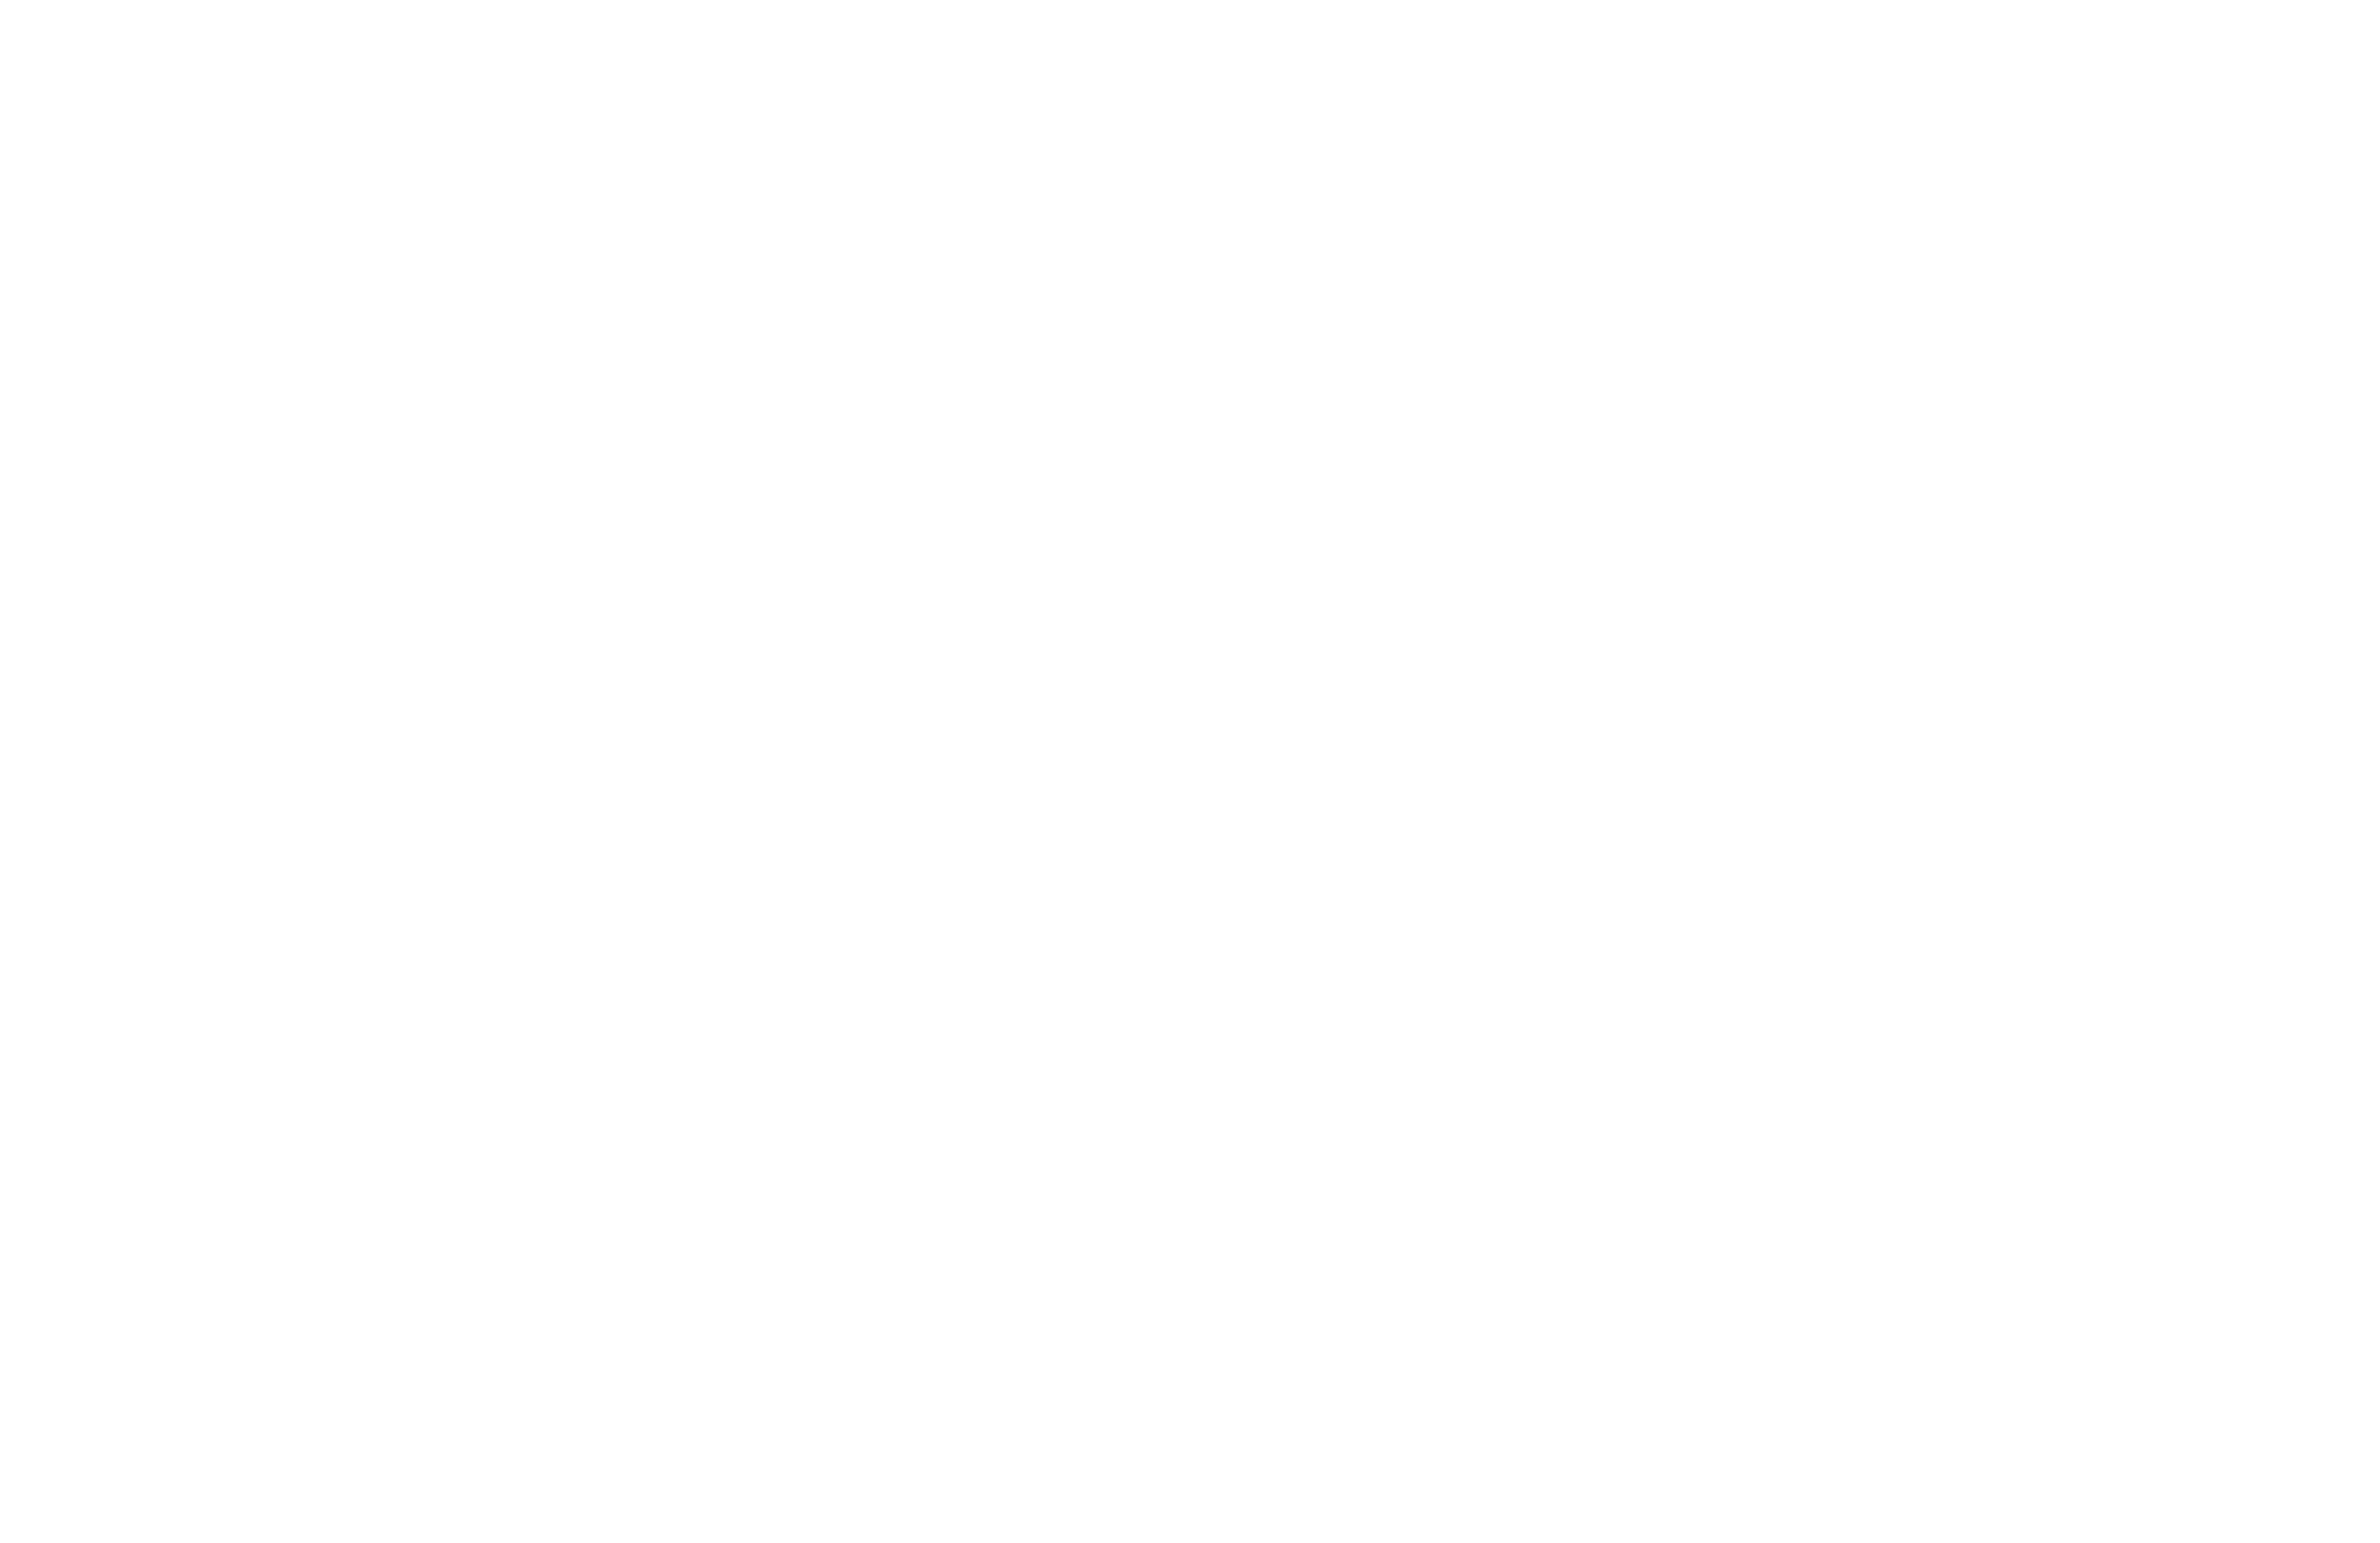 211 Photography